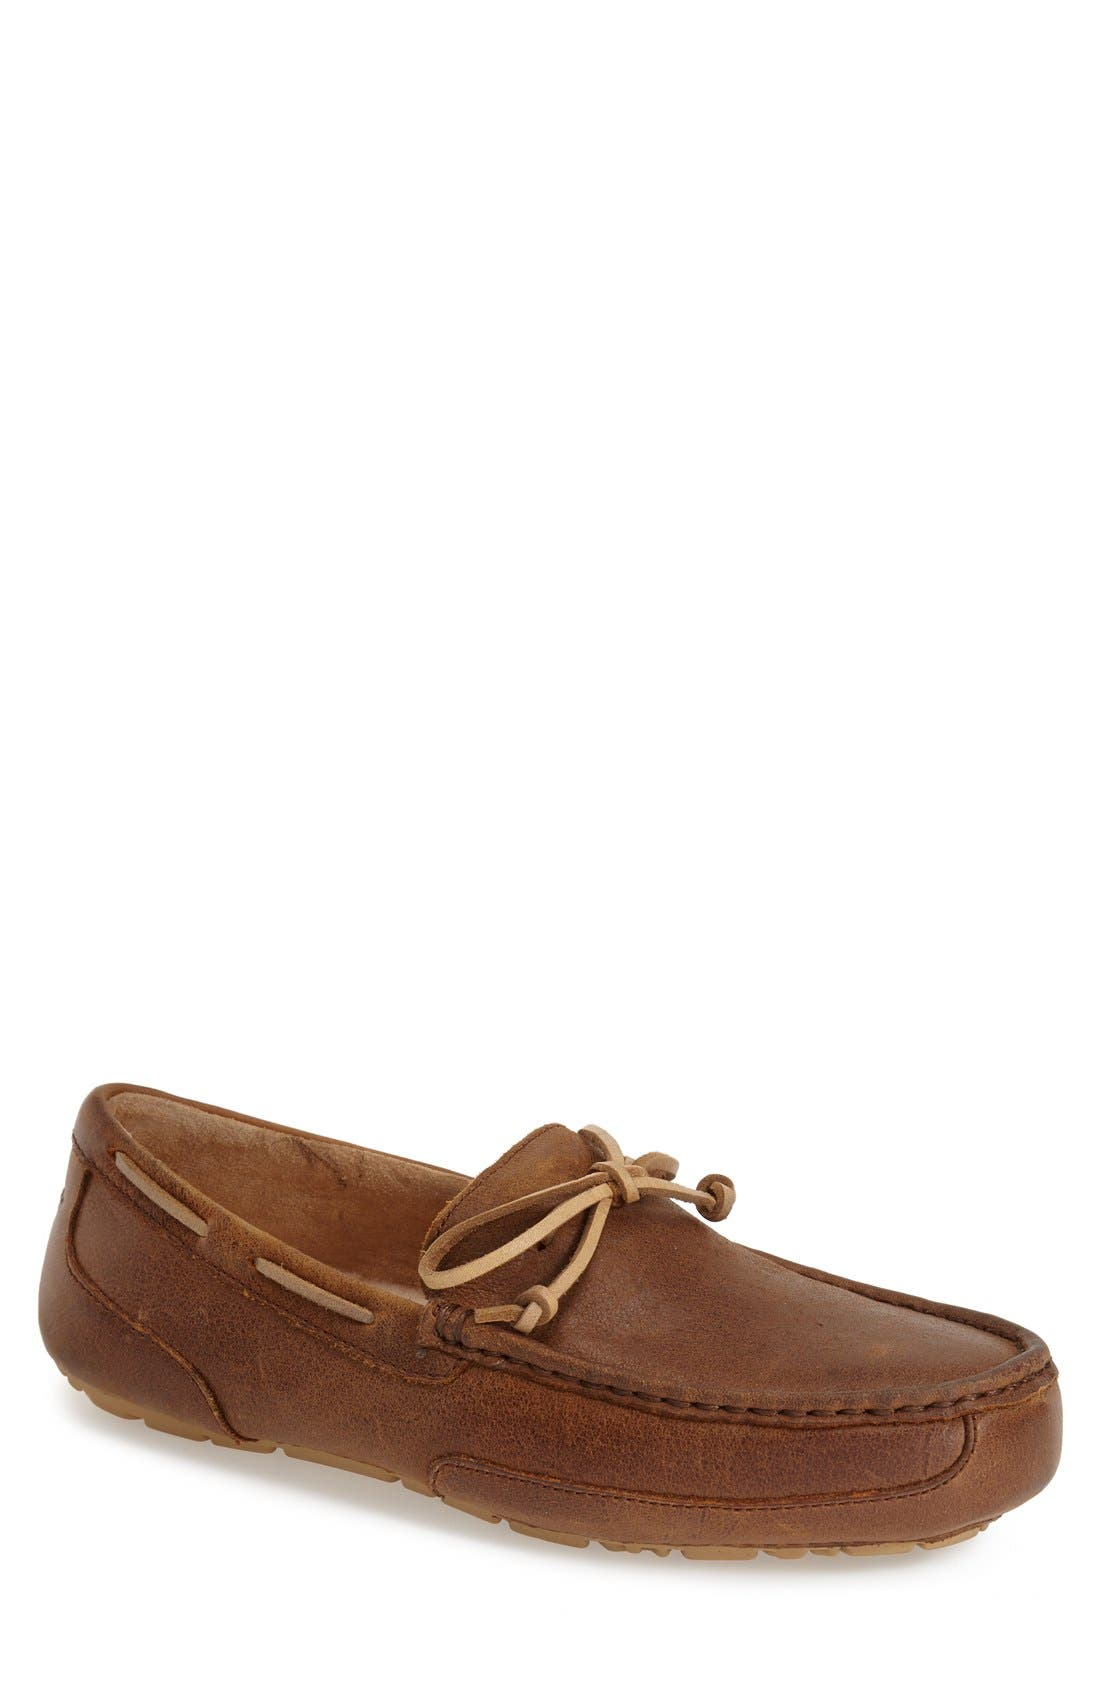 'Chester' Driving Loafer,                             Main thumbnail 6, color,